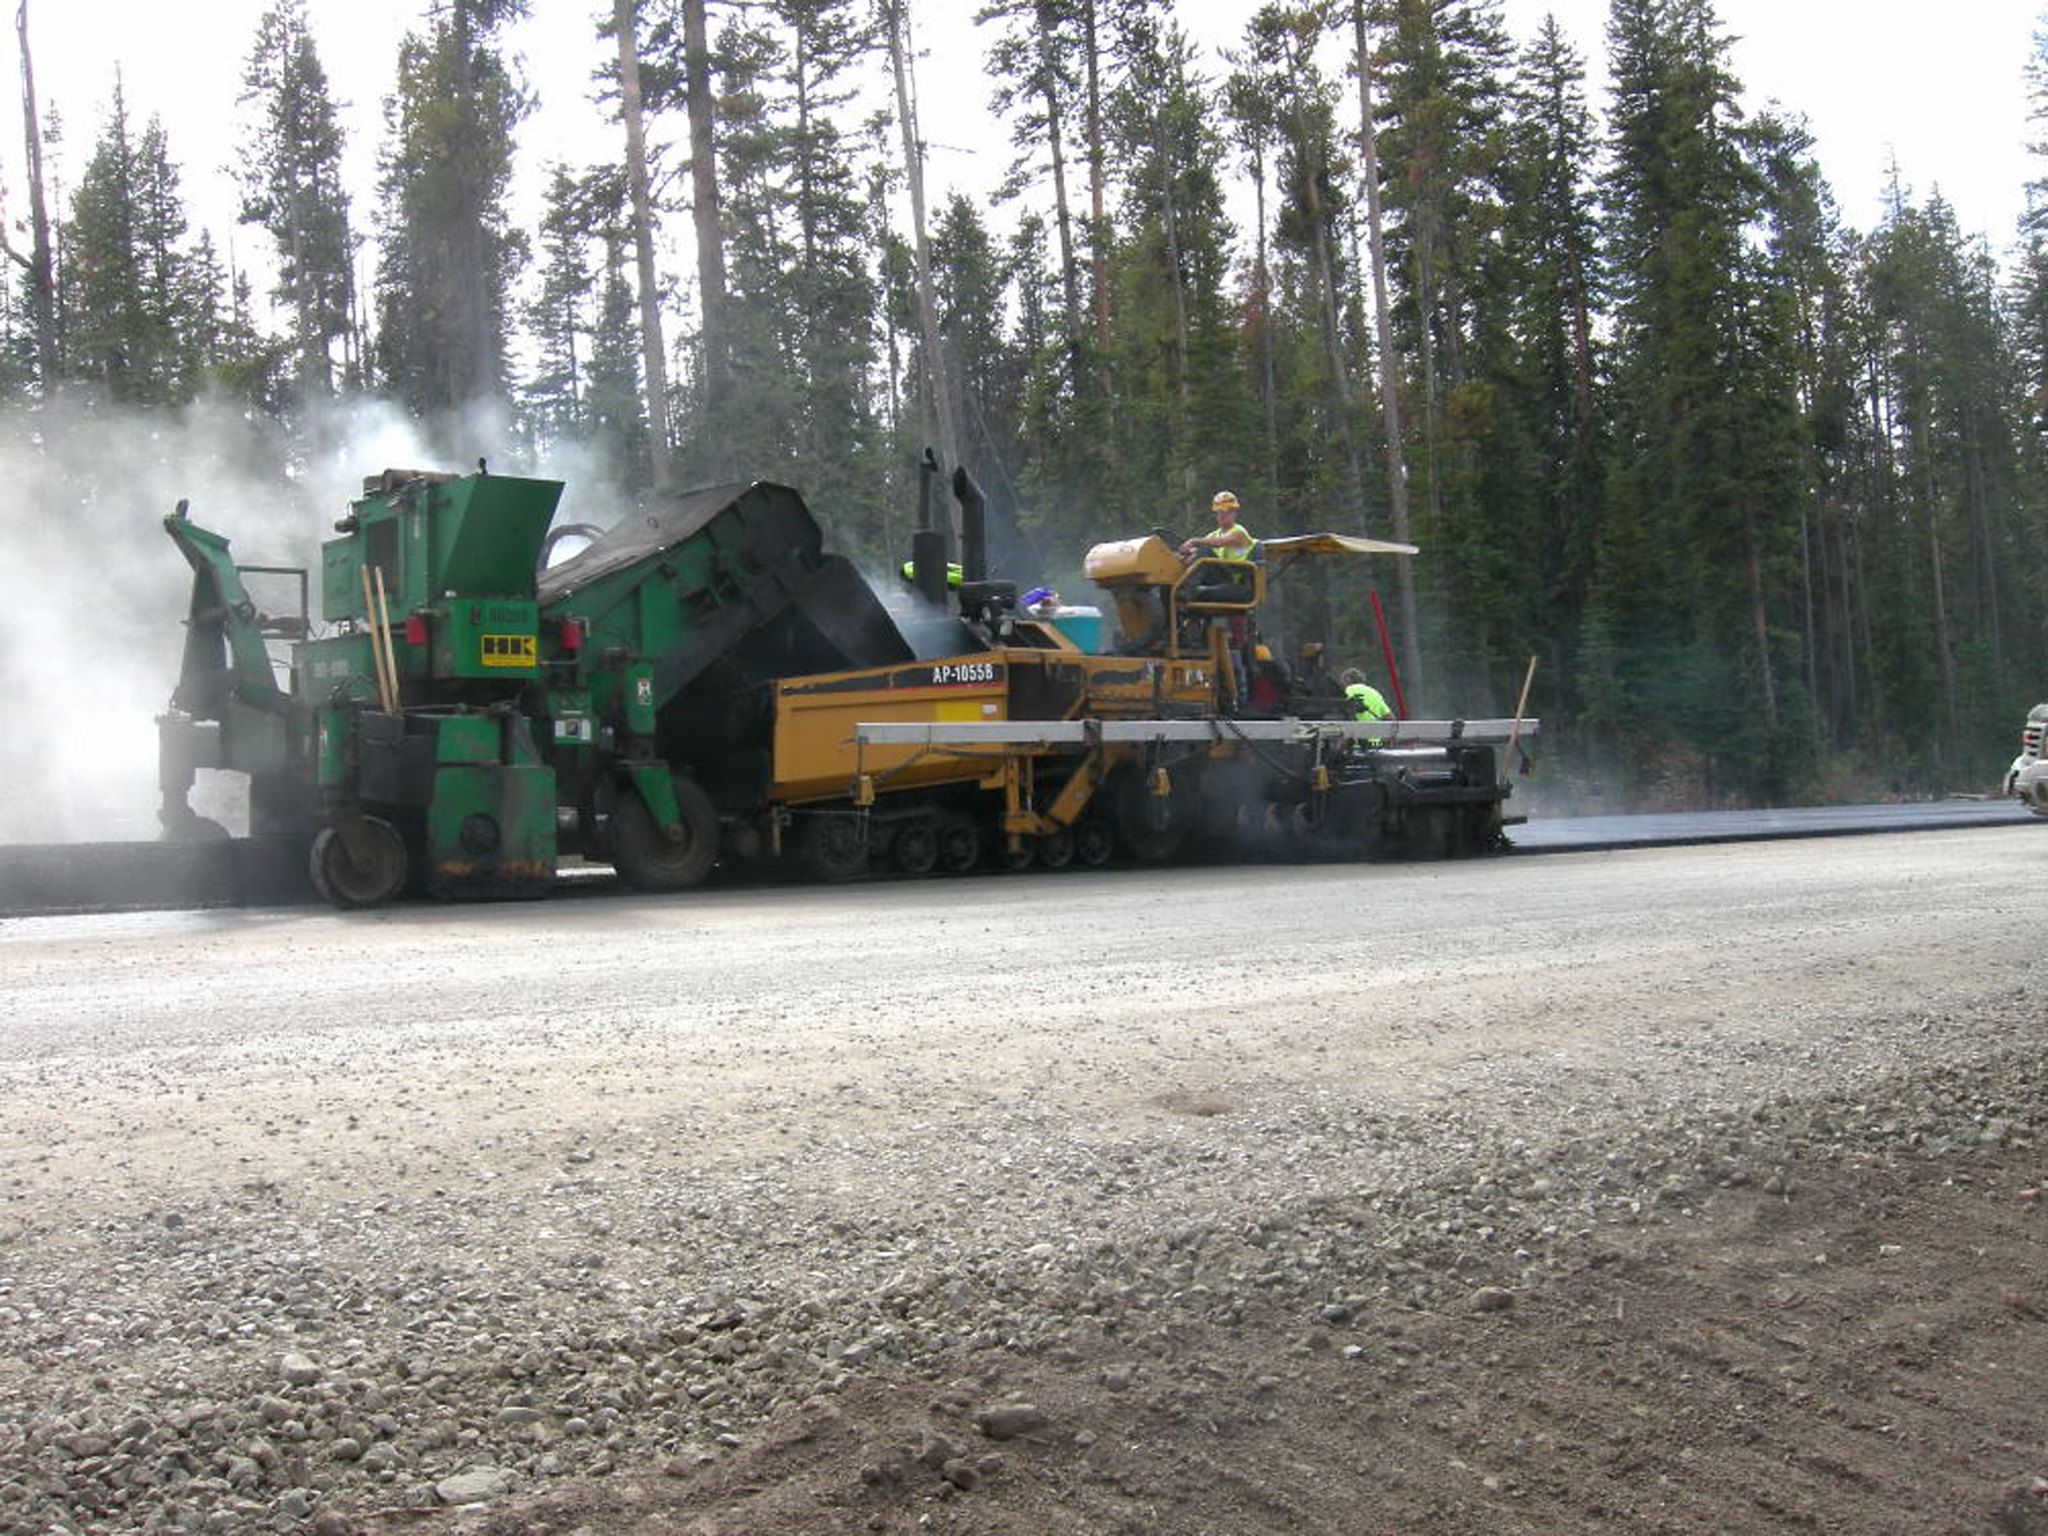 Paving equipment in use. (Credit: Show Us Your Togwotee/ Flickr)